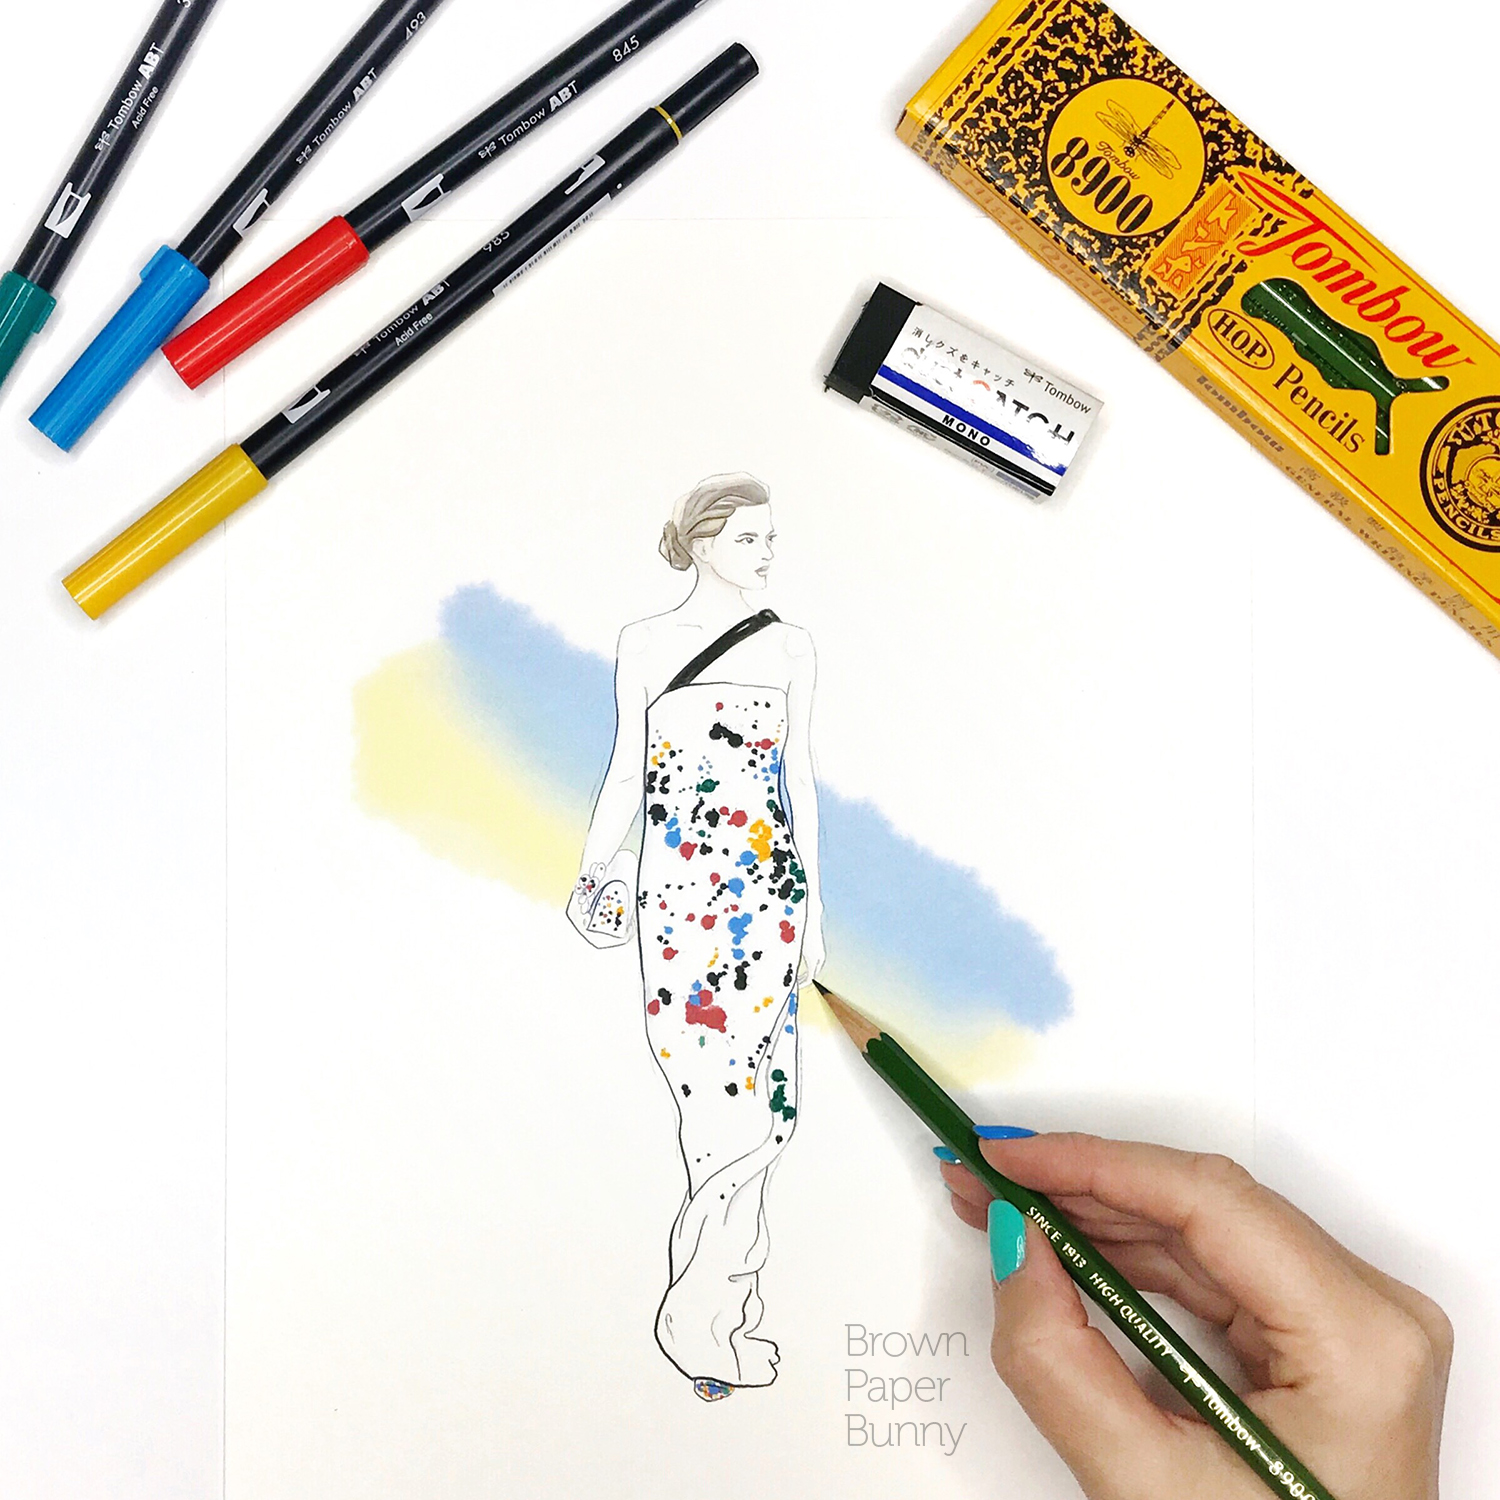 Ink and pencil fashion illustration, created for Tombow.